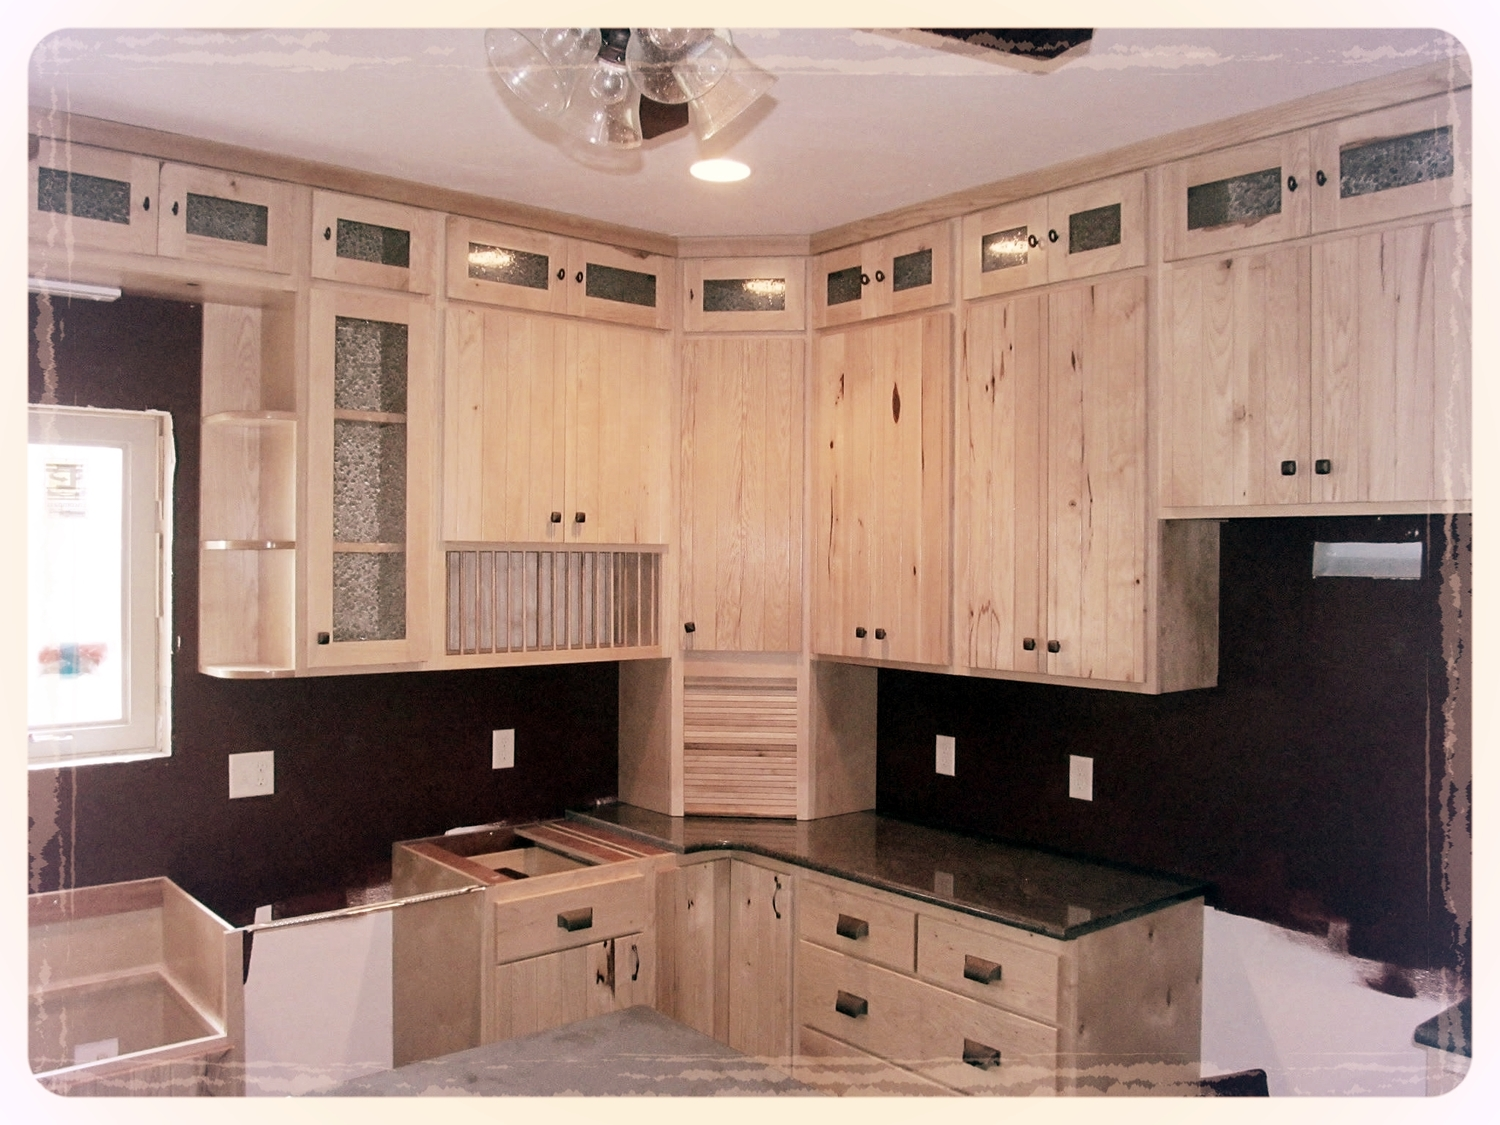 custom rustic kitchen cabinets. White hickory kitchen cabinets jpg Custom Rustic Kitchen Cabinets  Barn Wood Furniture